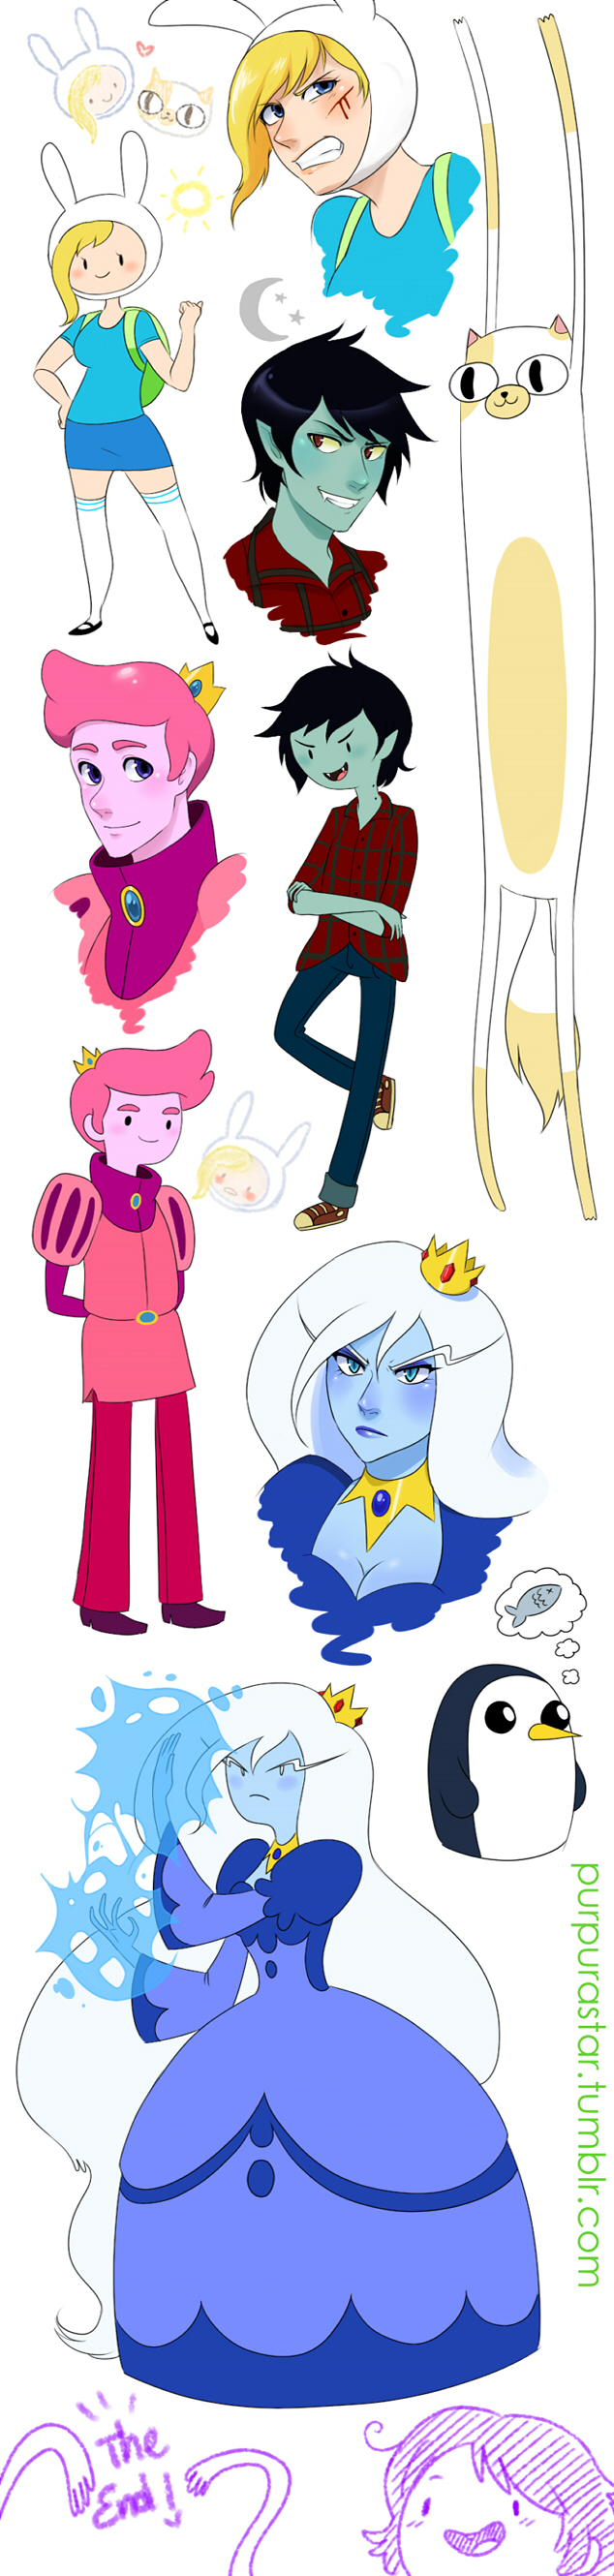 Tags: Anime, Purple-Star-6, Adventure Time, Cake the Cat, Marshall Lee the Vampire King, Fionna the Human Girl, Prince Bubba Gumball, Ice Queen (Adventure Time), Bunny Hat, Pink Skin, deviantART, Fanart From DeviantART, Fanart